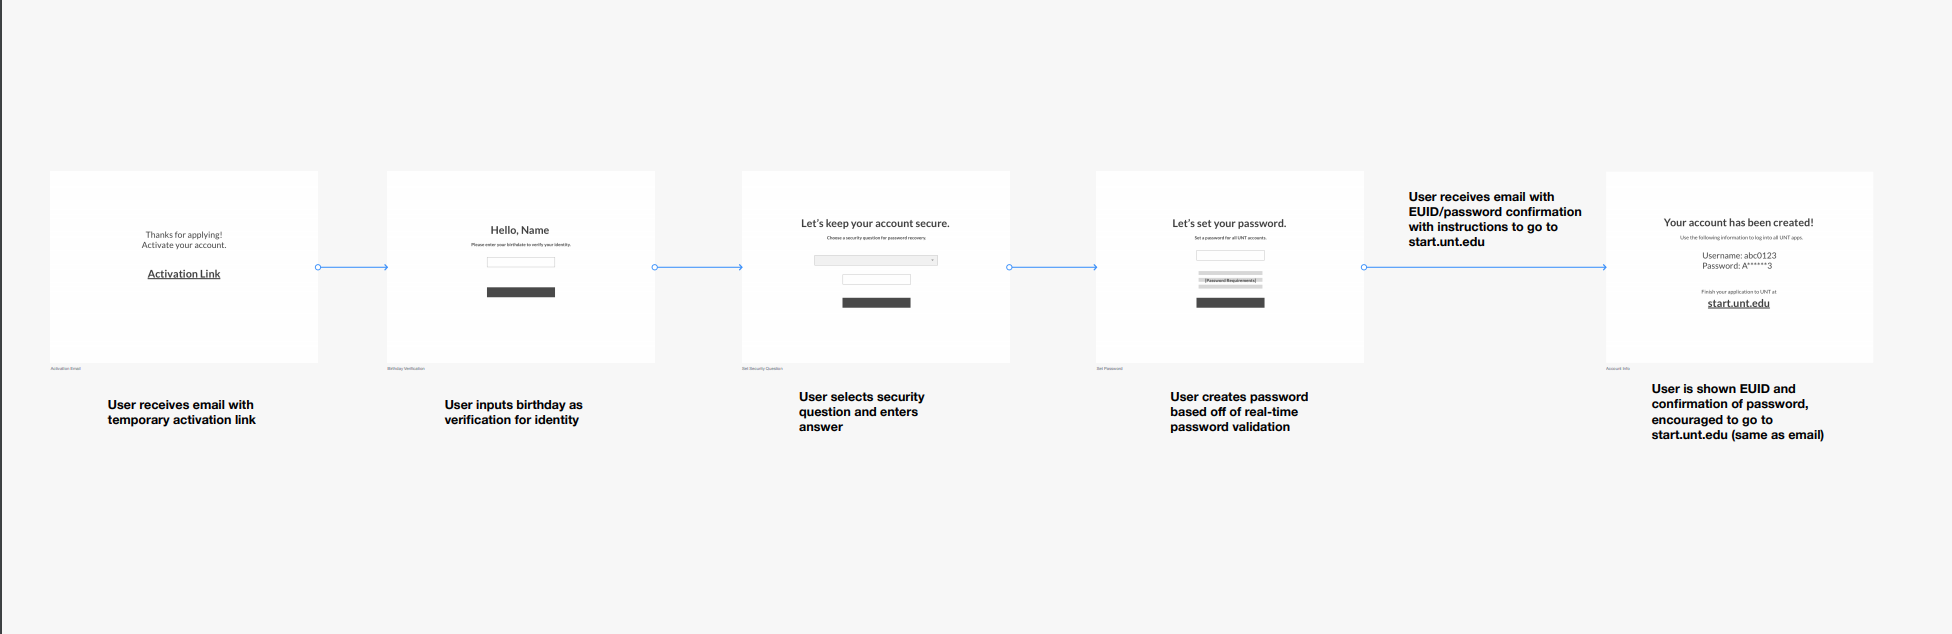 New experience: wireframes and user flow for the ID activation process